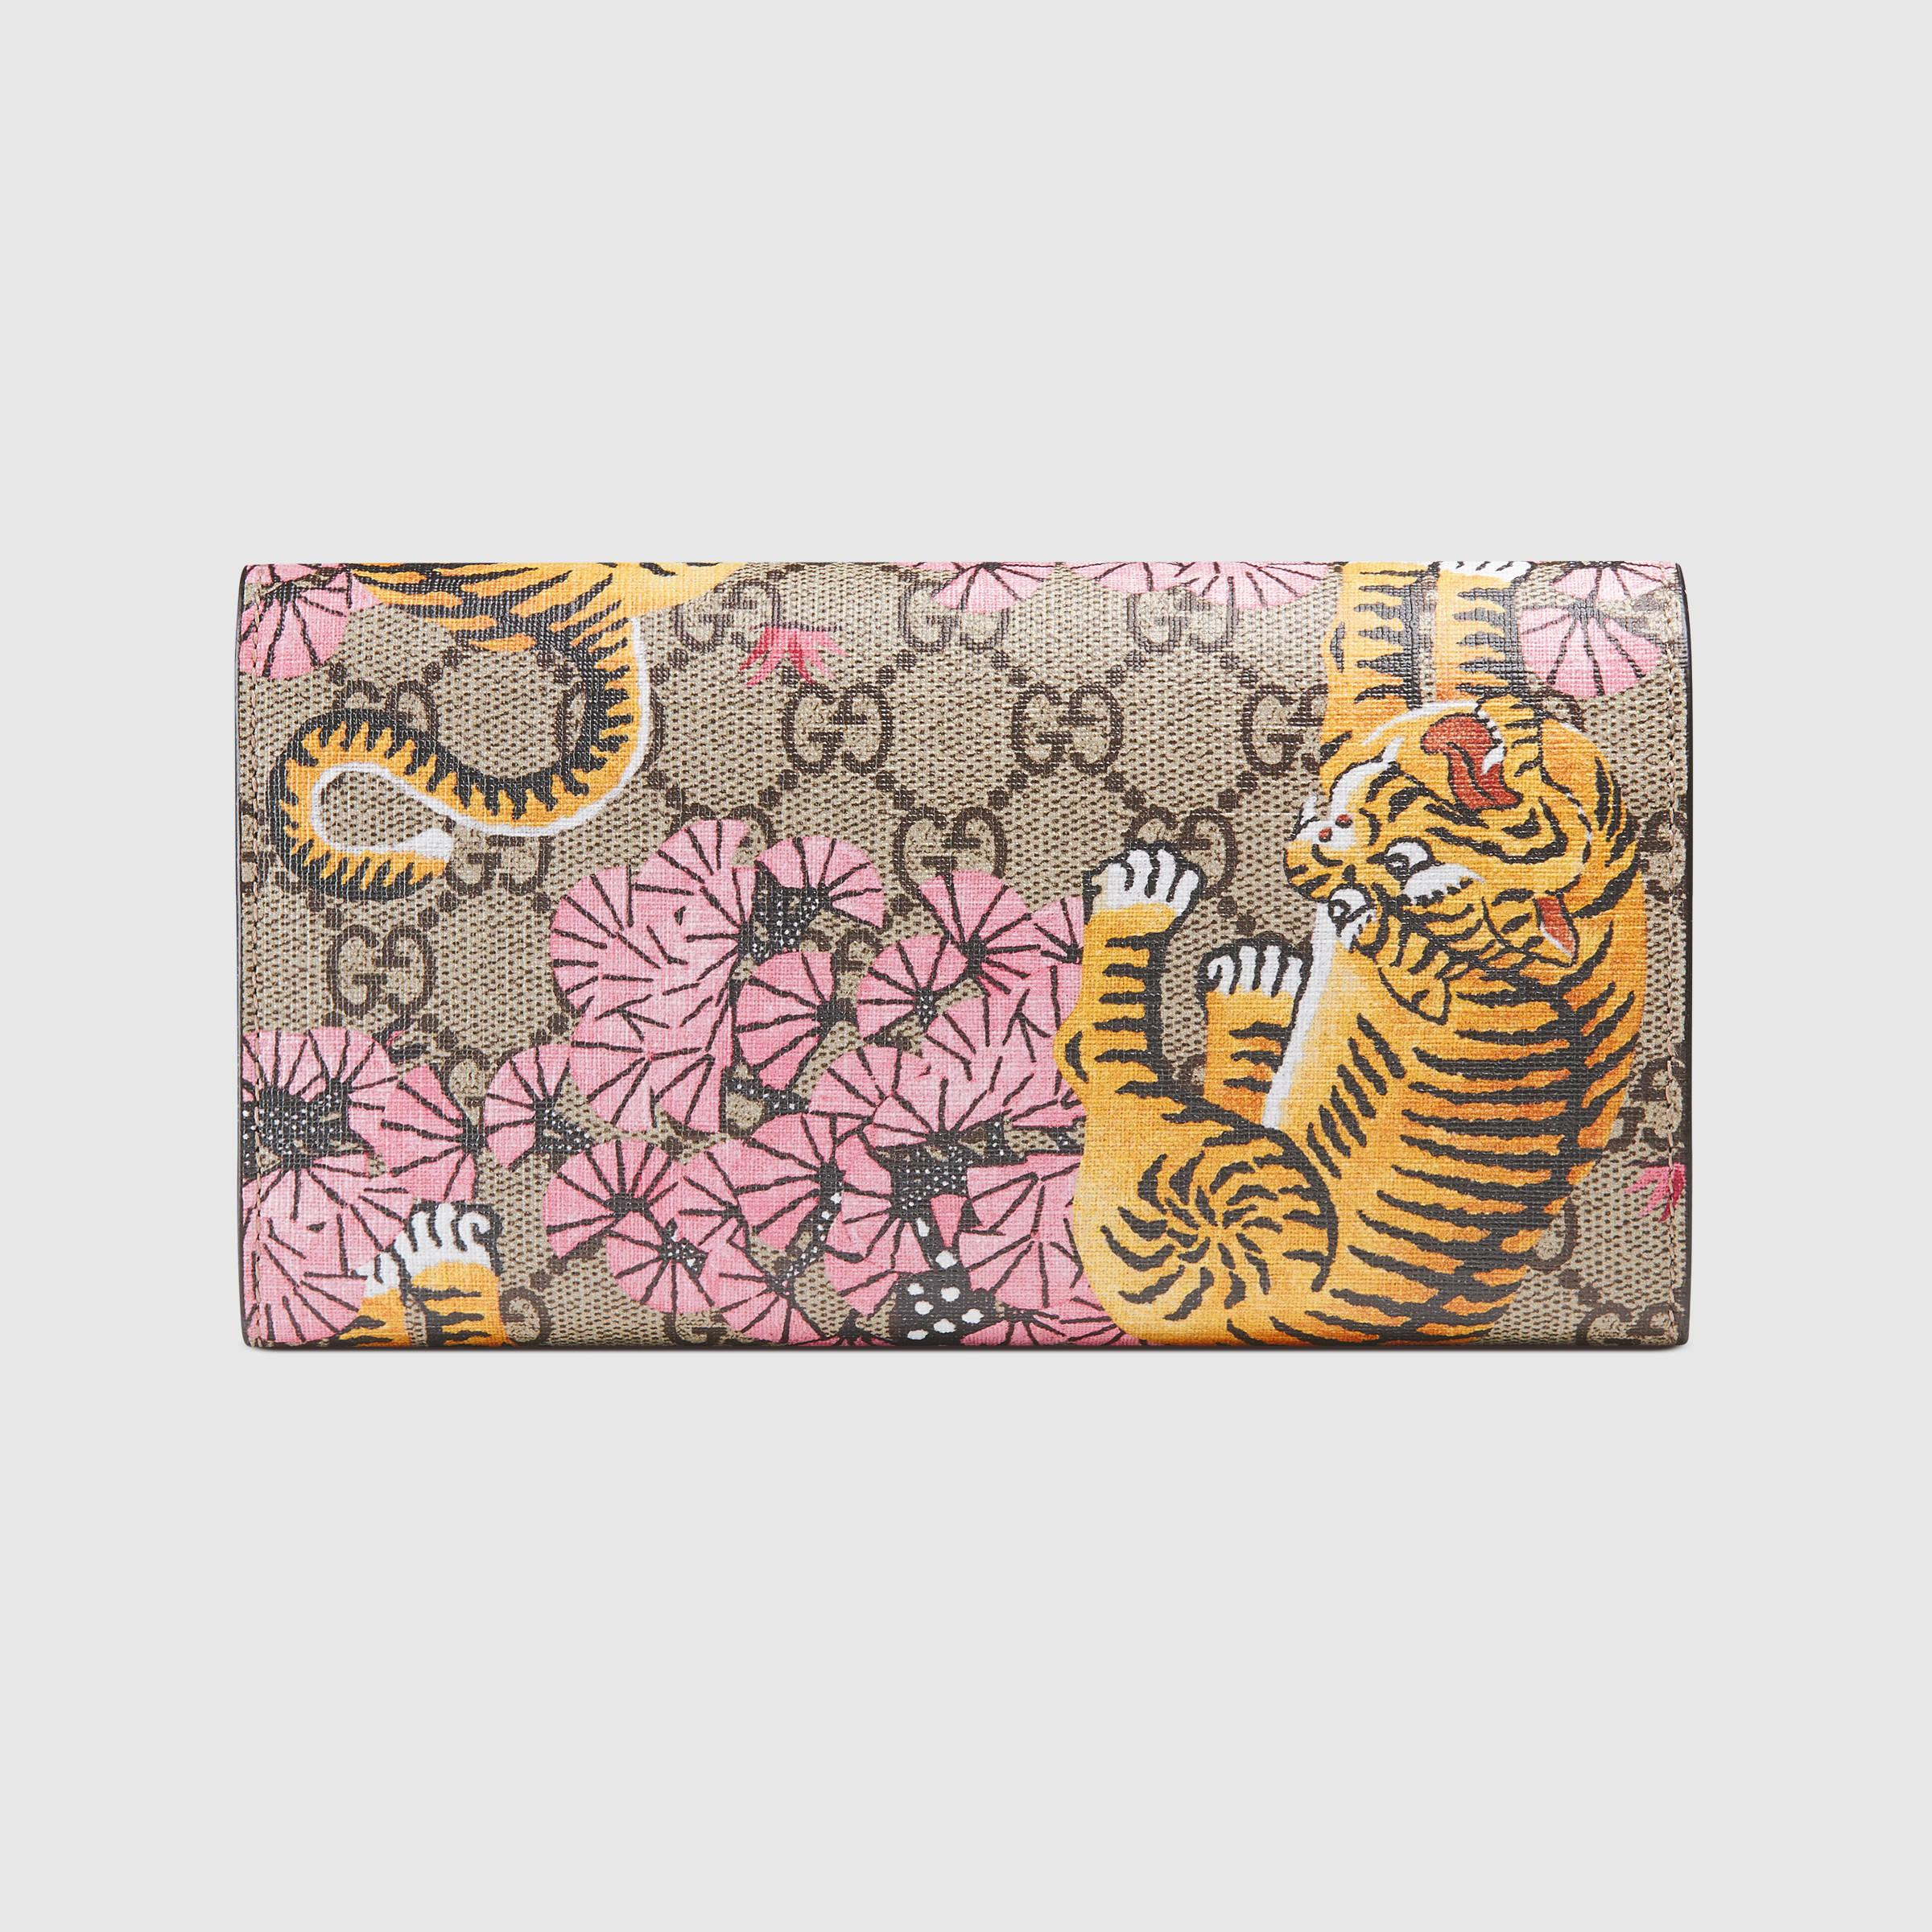 becd312c78a9 Gucci Bengal Wallet Fake | Stanford Center for Opportunity Policy in ...